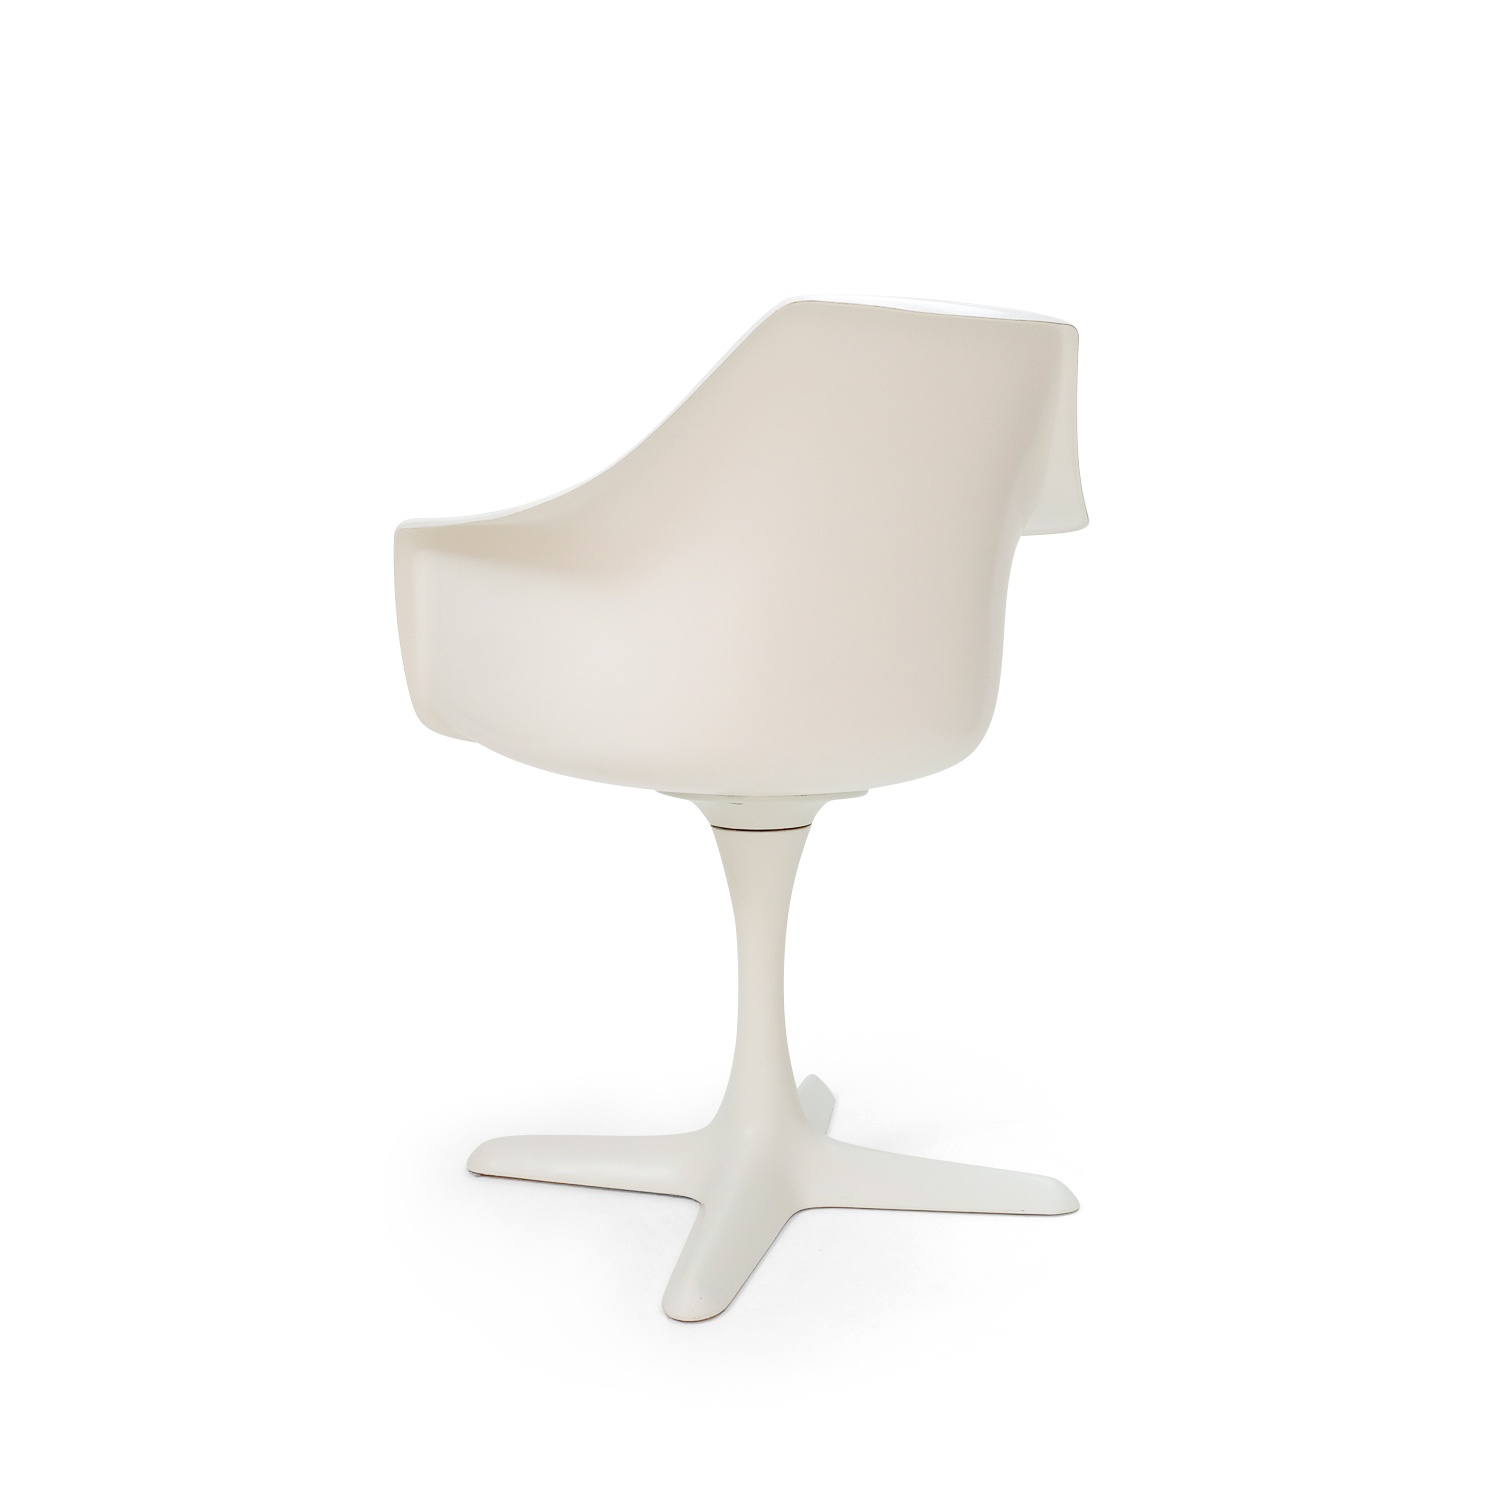 Model No 116 Chair By Maurice Burke For Arkana Sympledesign